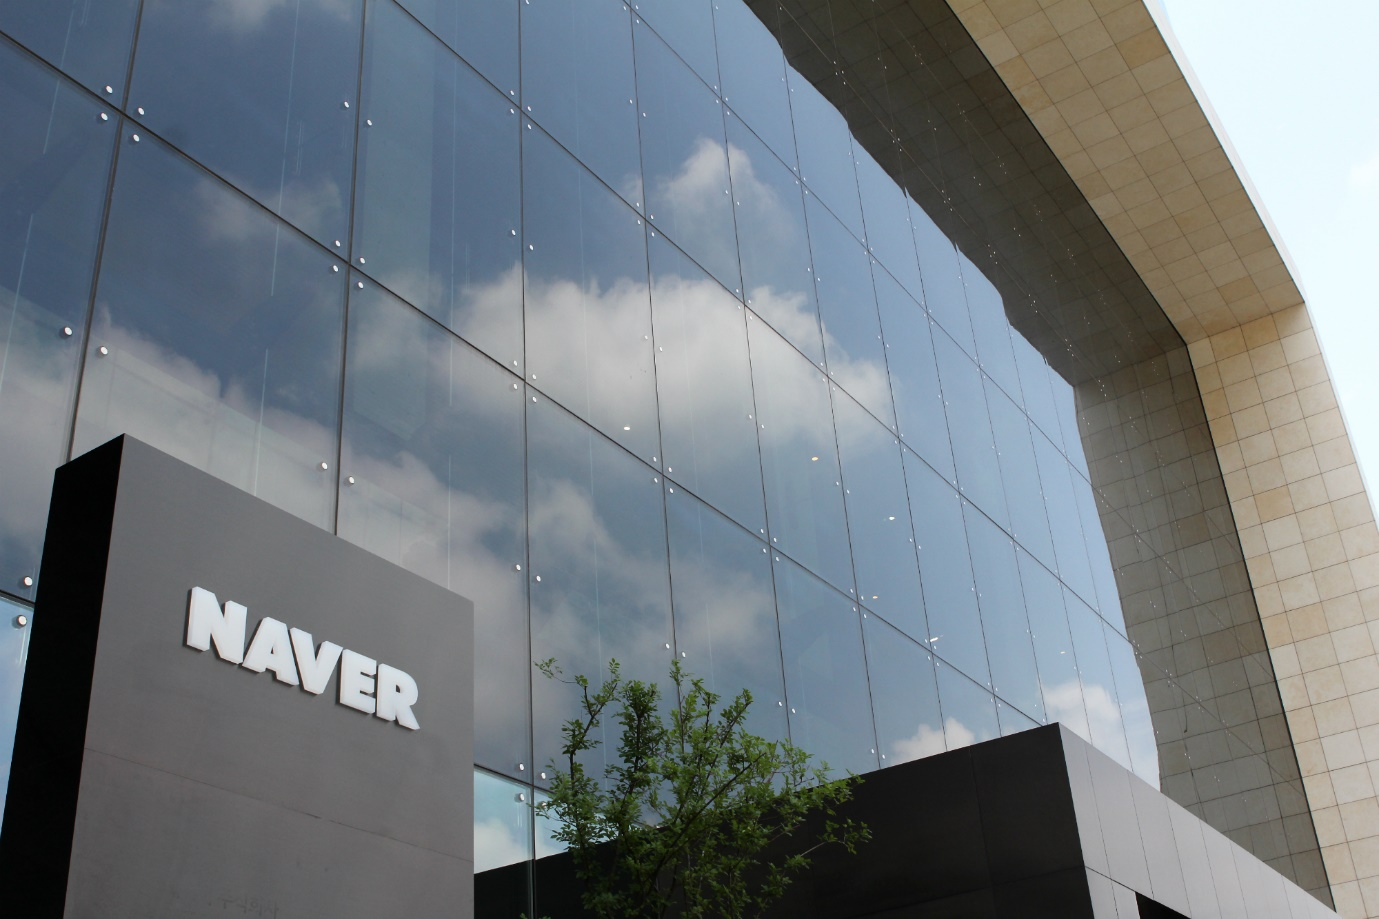 Naver founder Lee Hae-jin recently aksed the Korea Fair Trade Commission (KFTC) to designate Naver as an ownerless company.